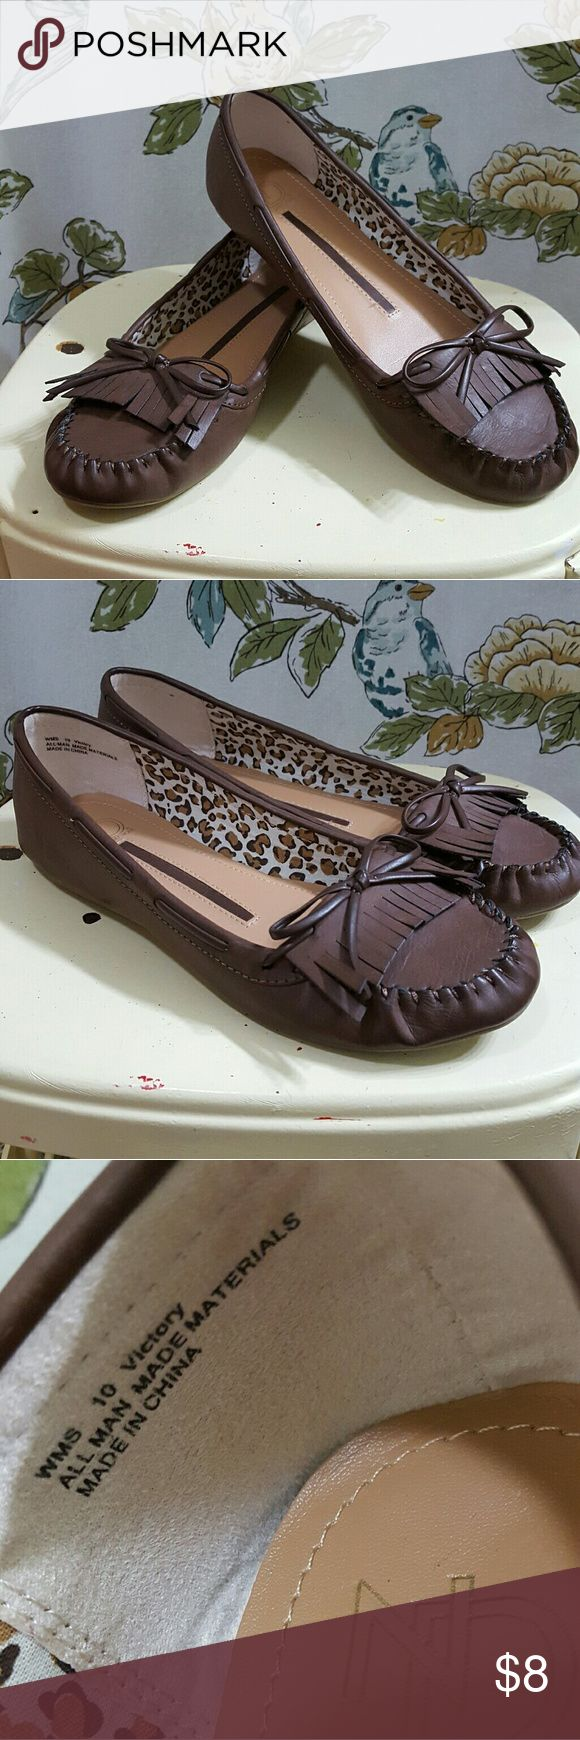 💜Very Cute Loafers💜 Dark Brown. Loafers. Moccasins. Leather look. Like new! One Direction Shoes Flats & Loafers